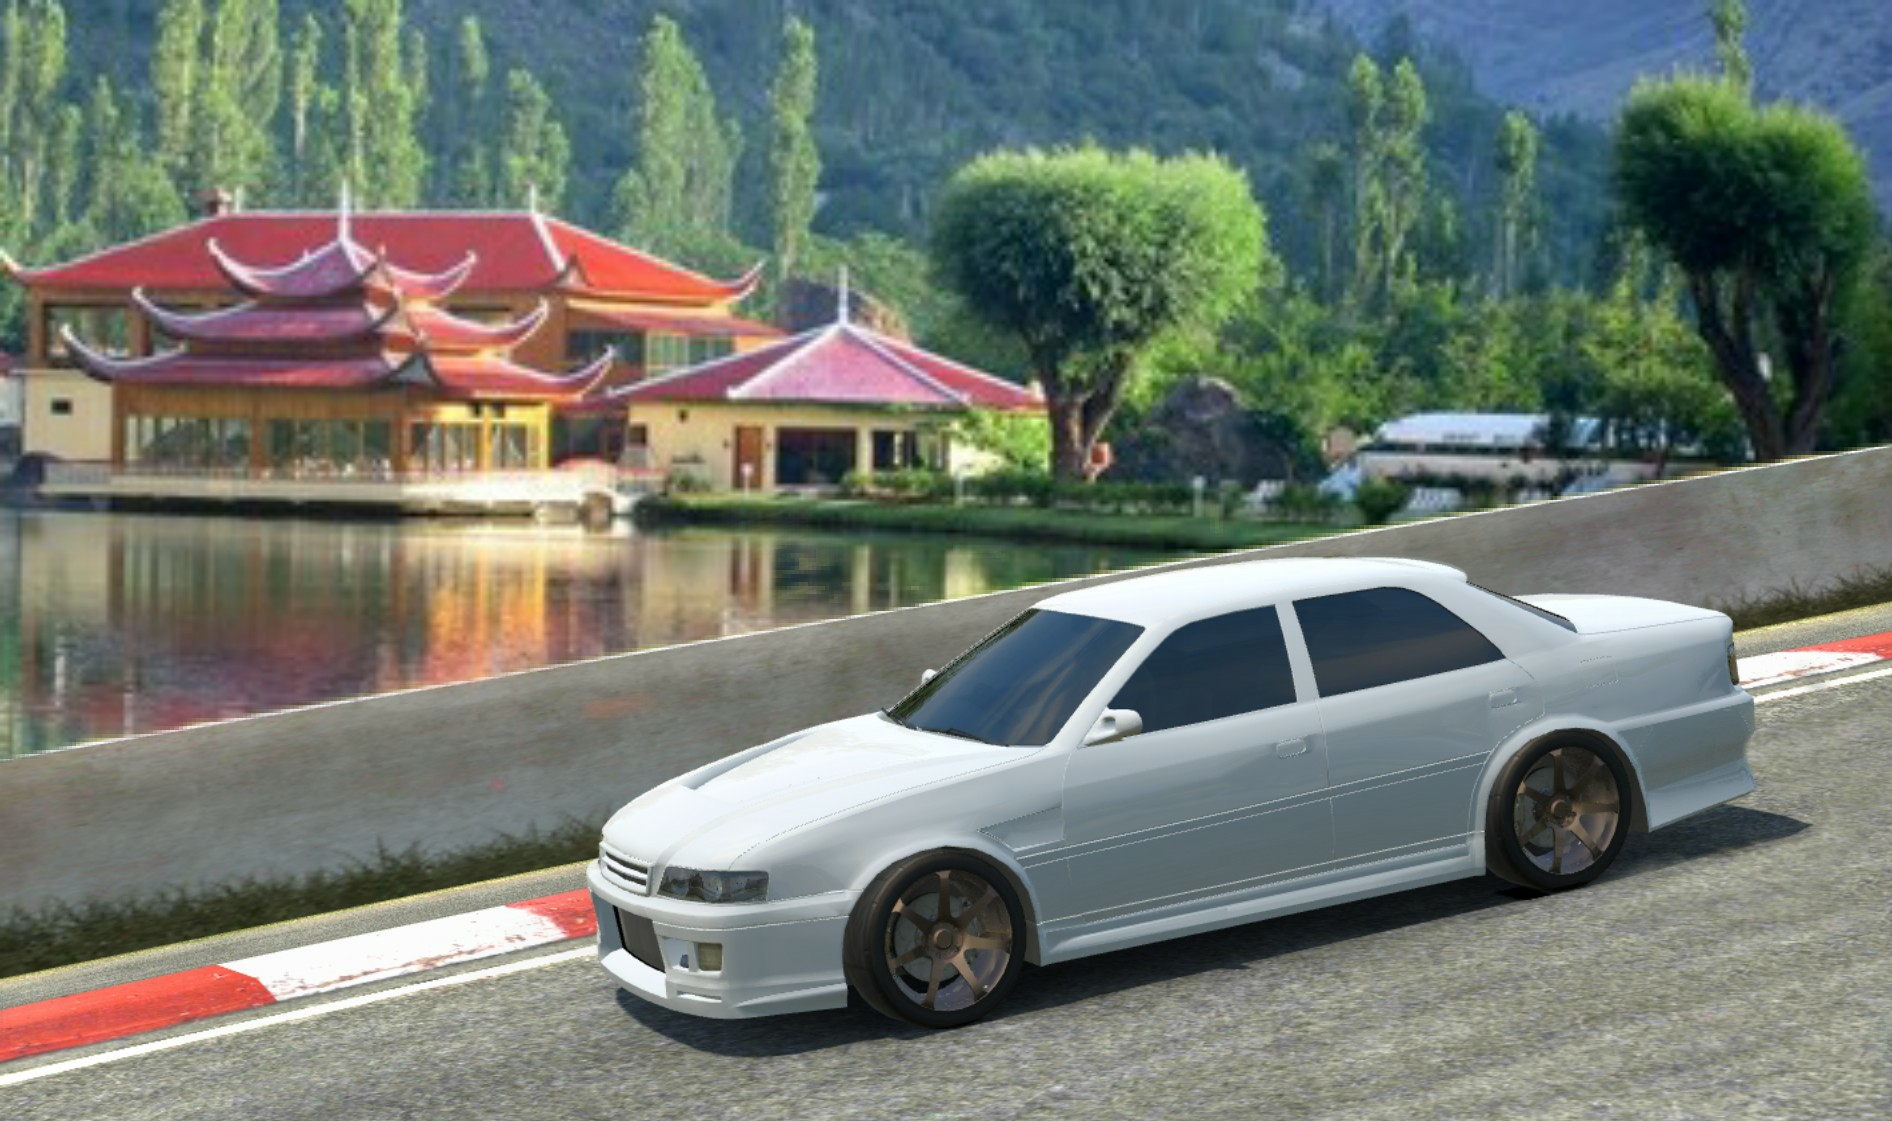 Toyota Chaser Wallpapers HD Download